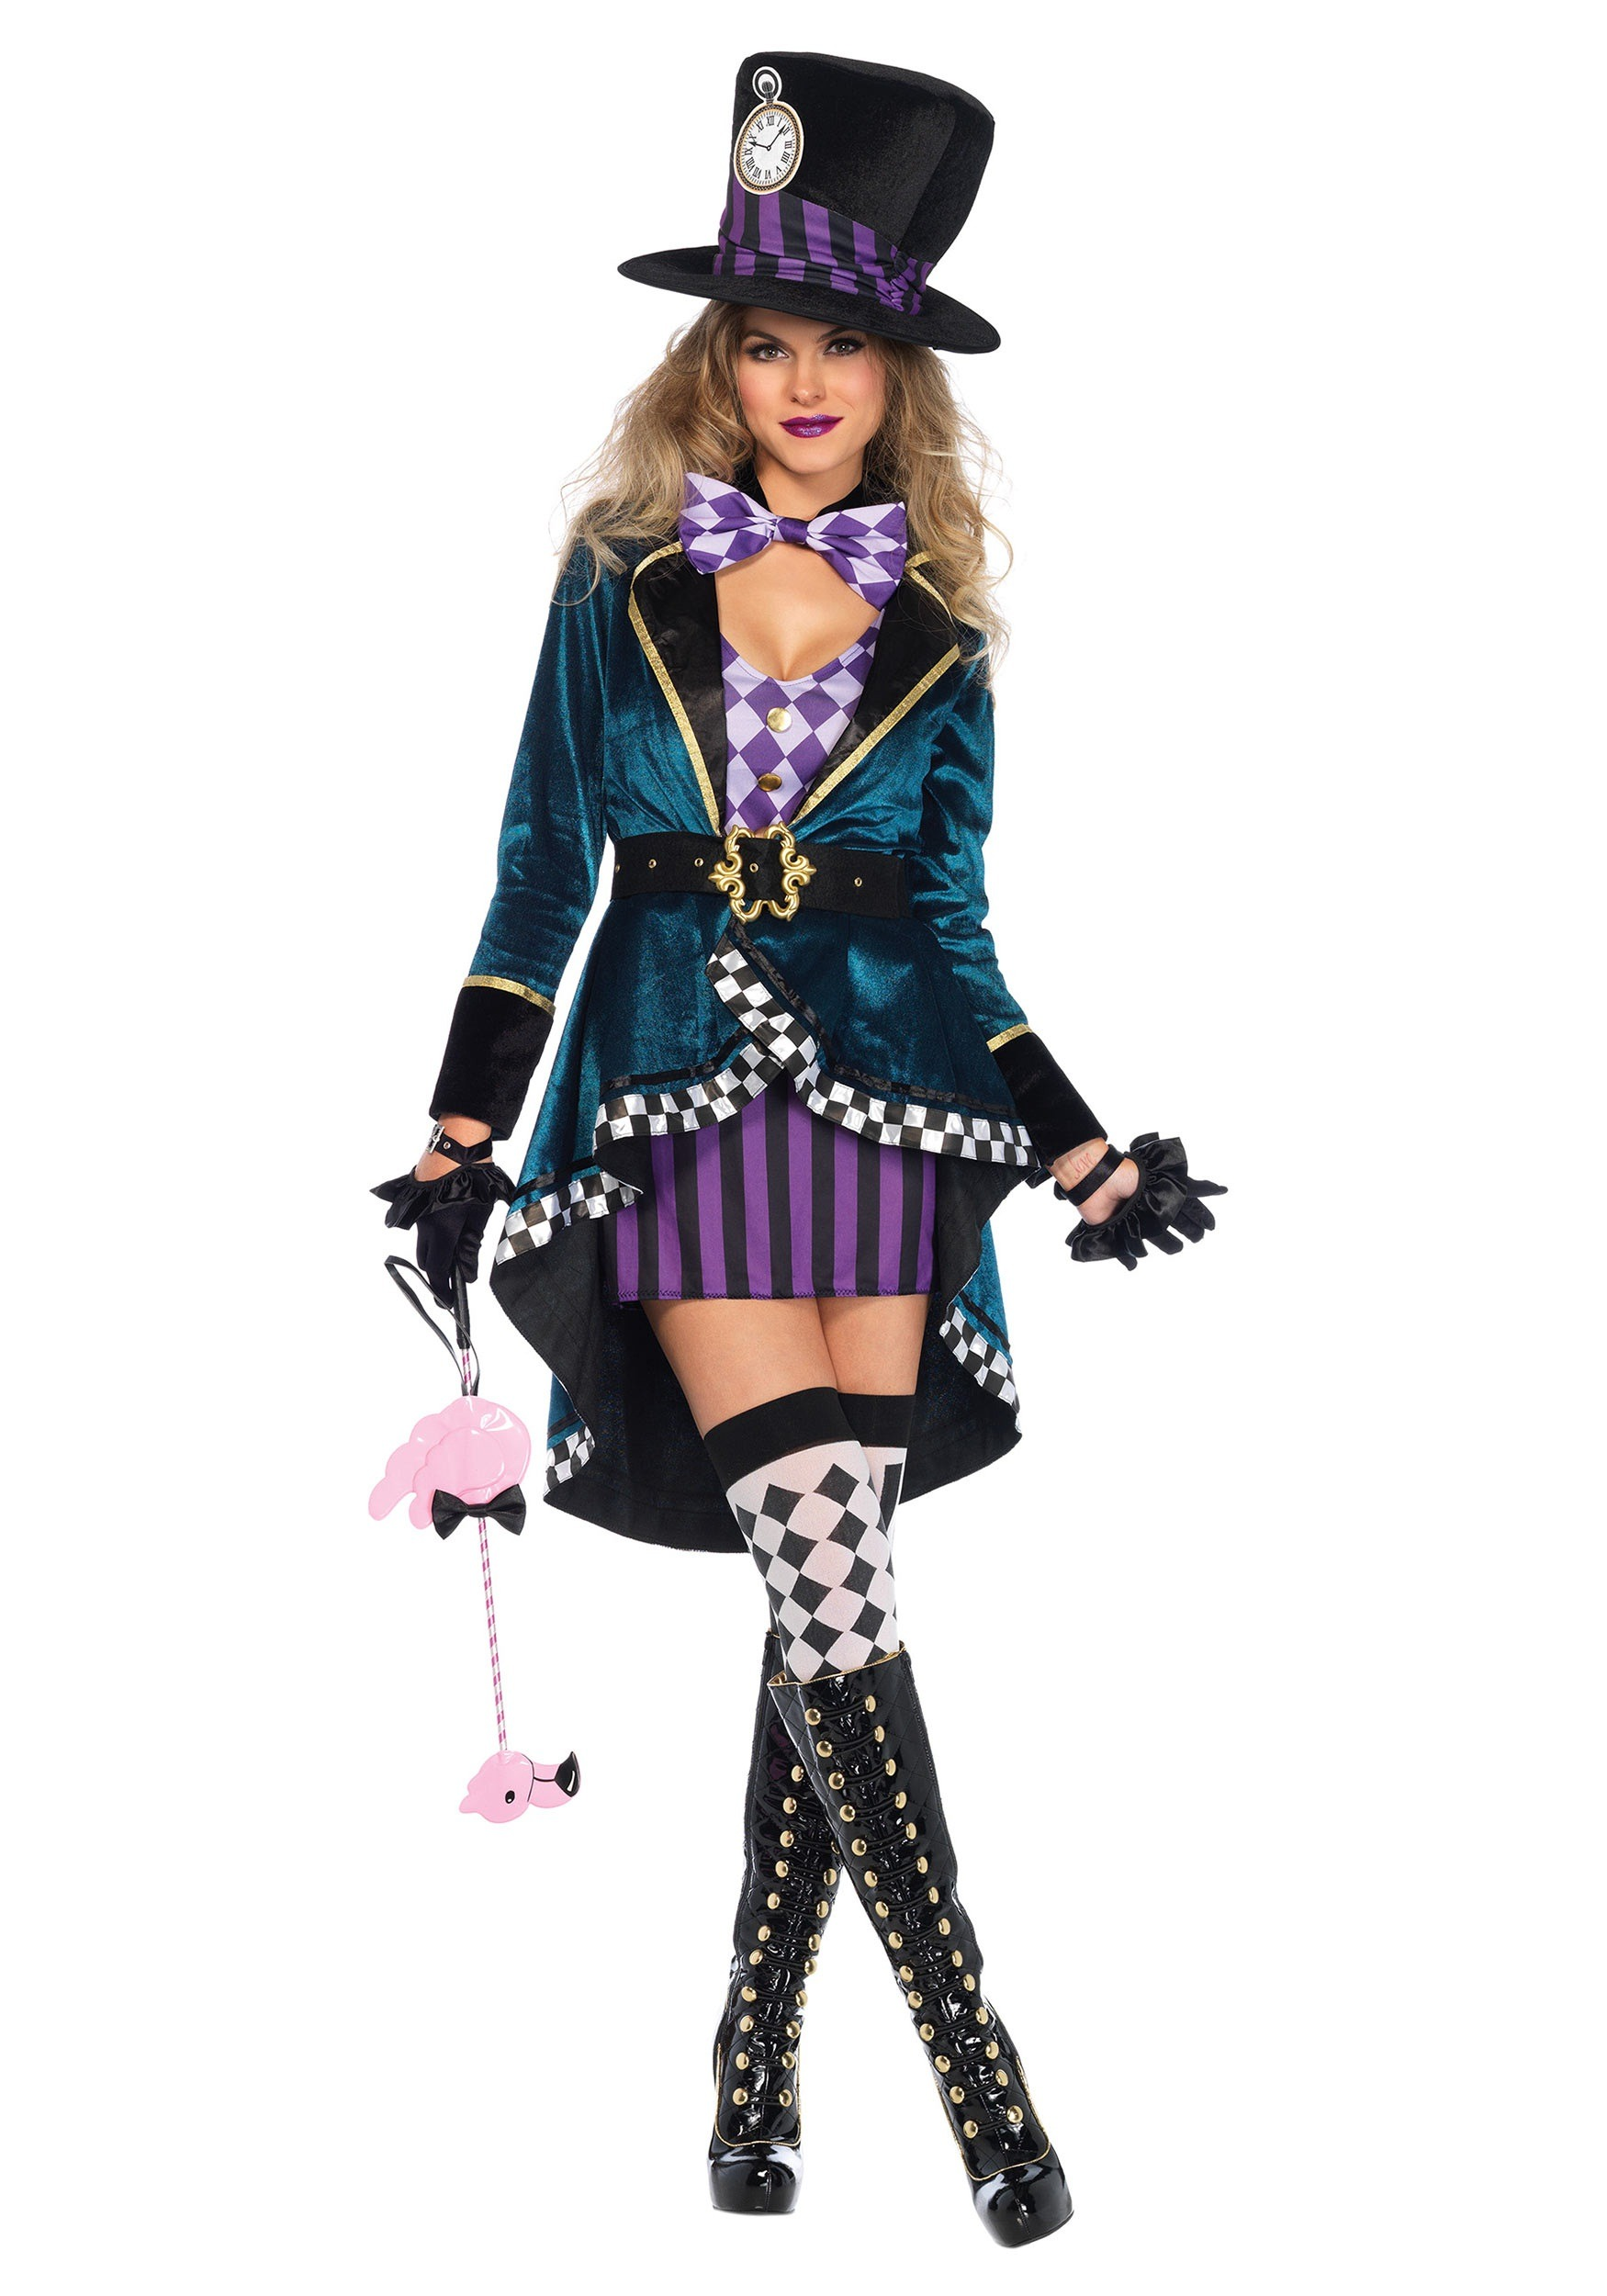 fdb13022210 best top the mad hatter halloween costume ideas and get free ...